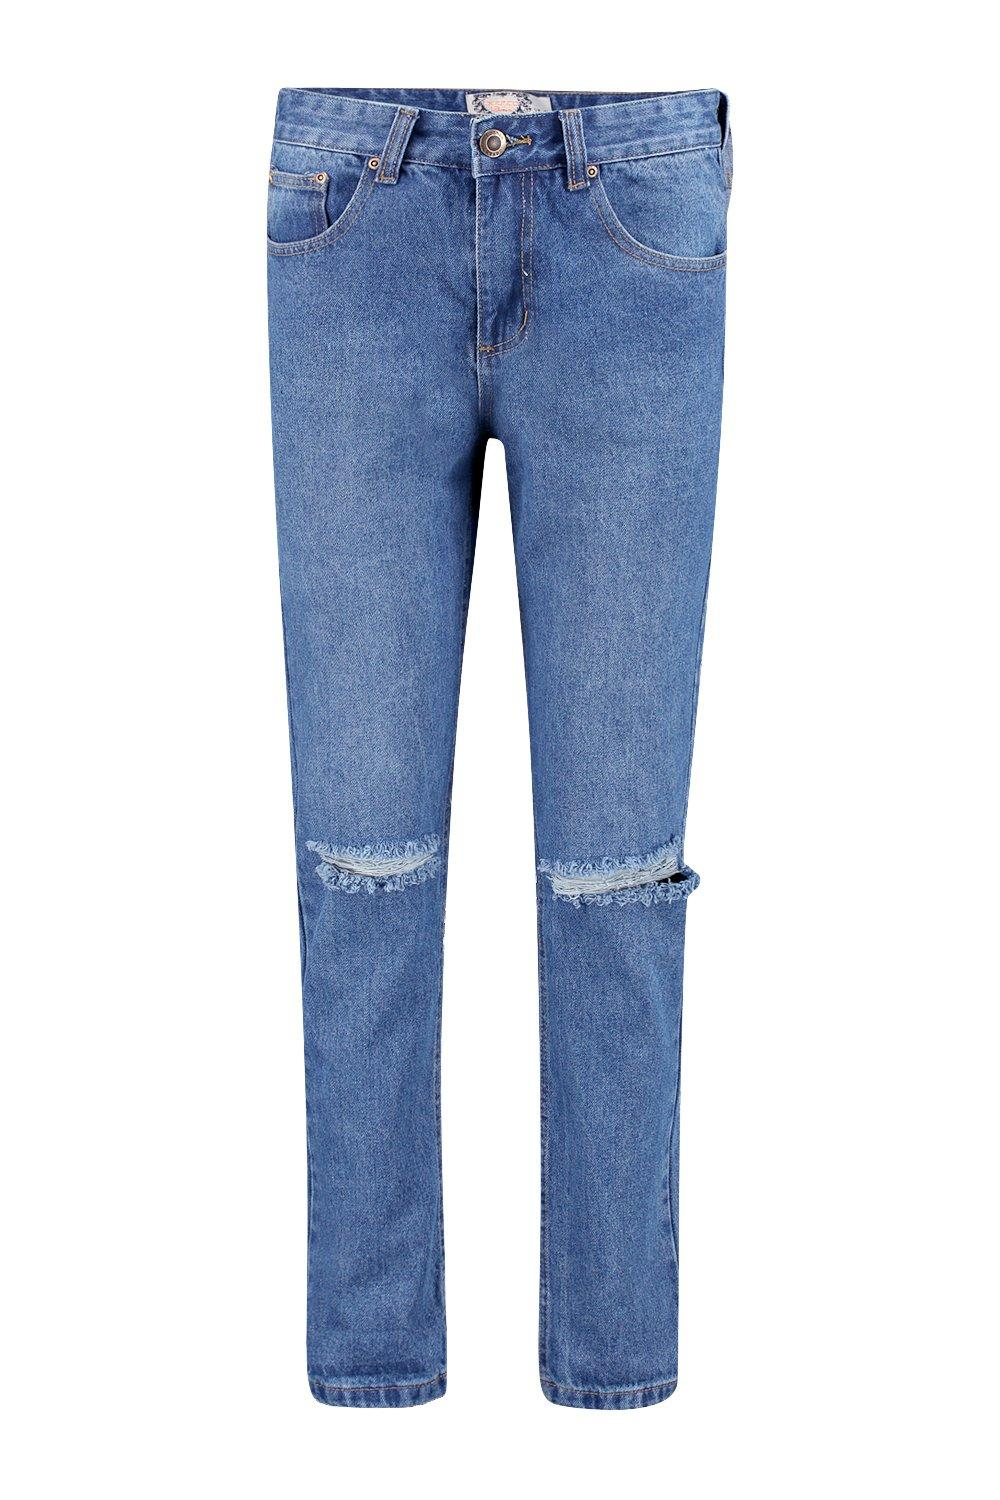 Molly Mid Rise Mid Wash Distressed Boyfriend Jean